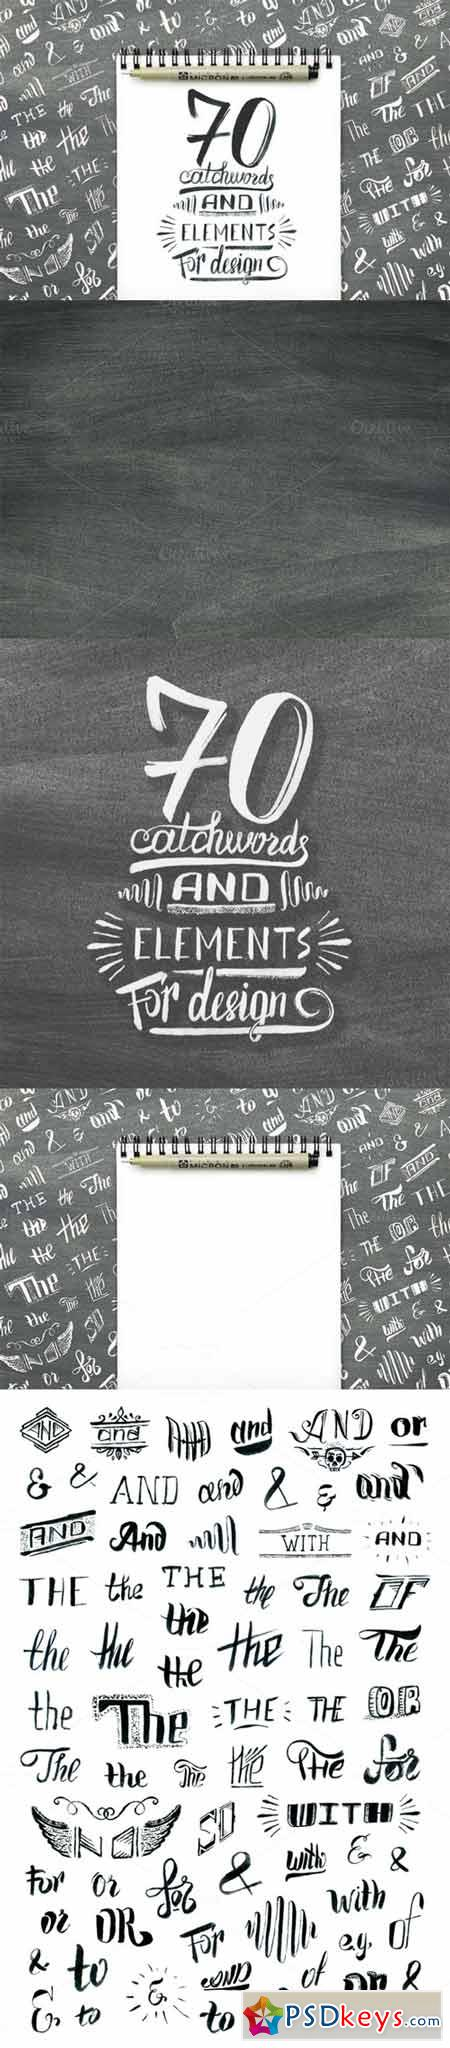 Handlettered catchwords and elements 361709